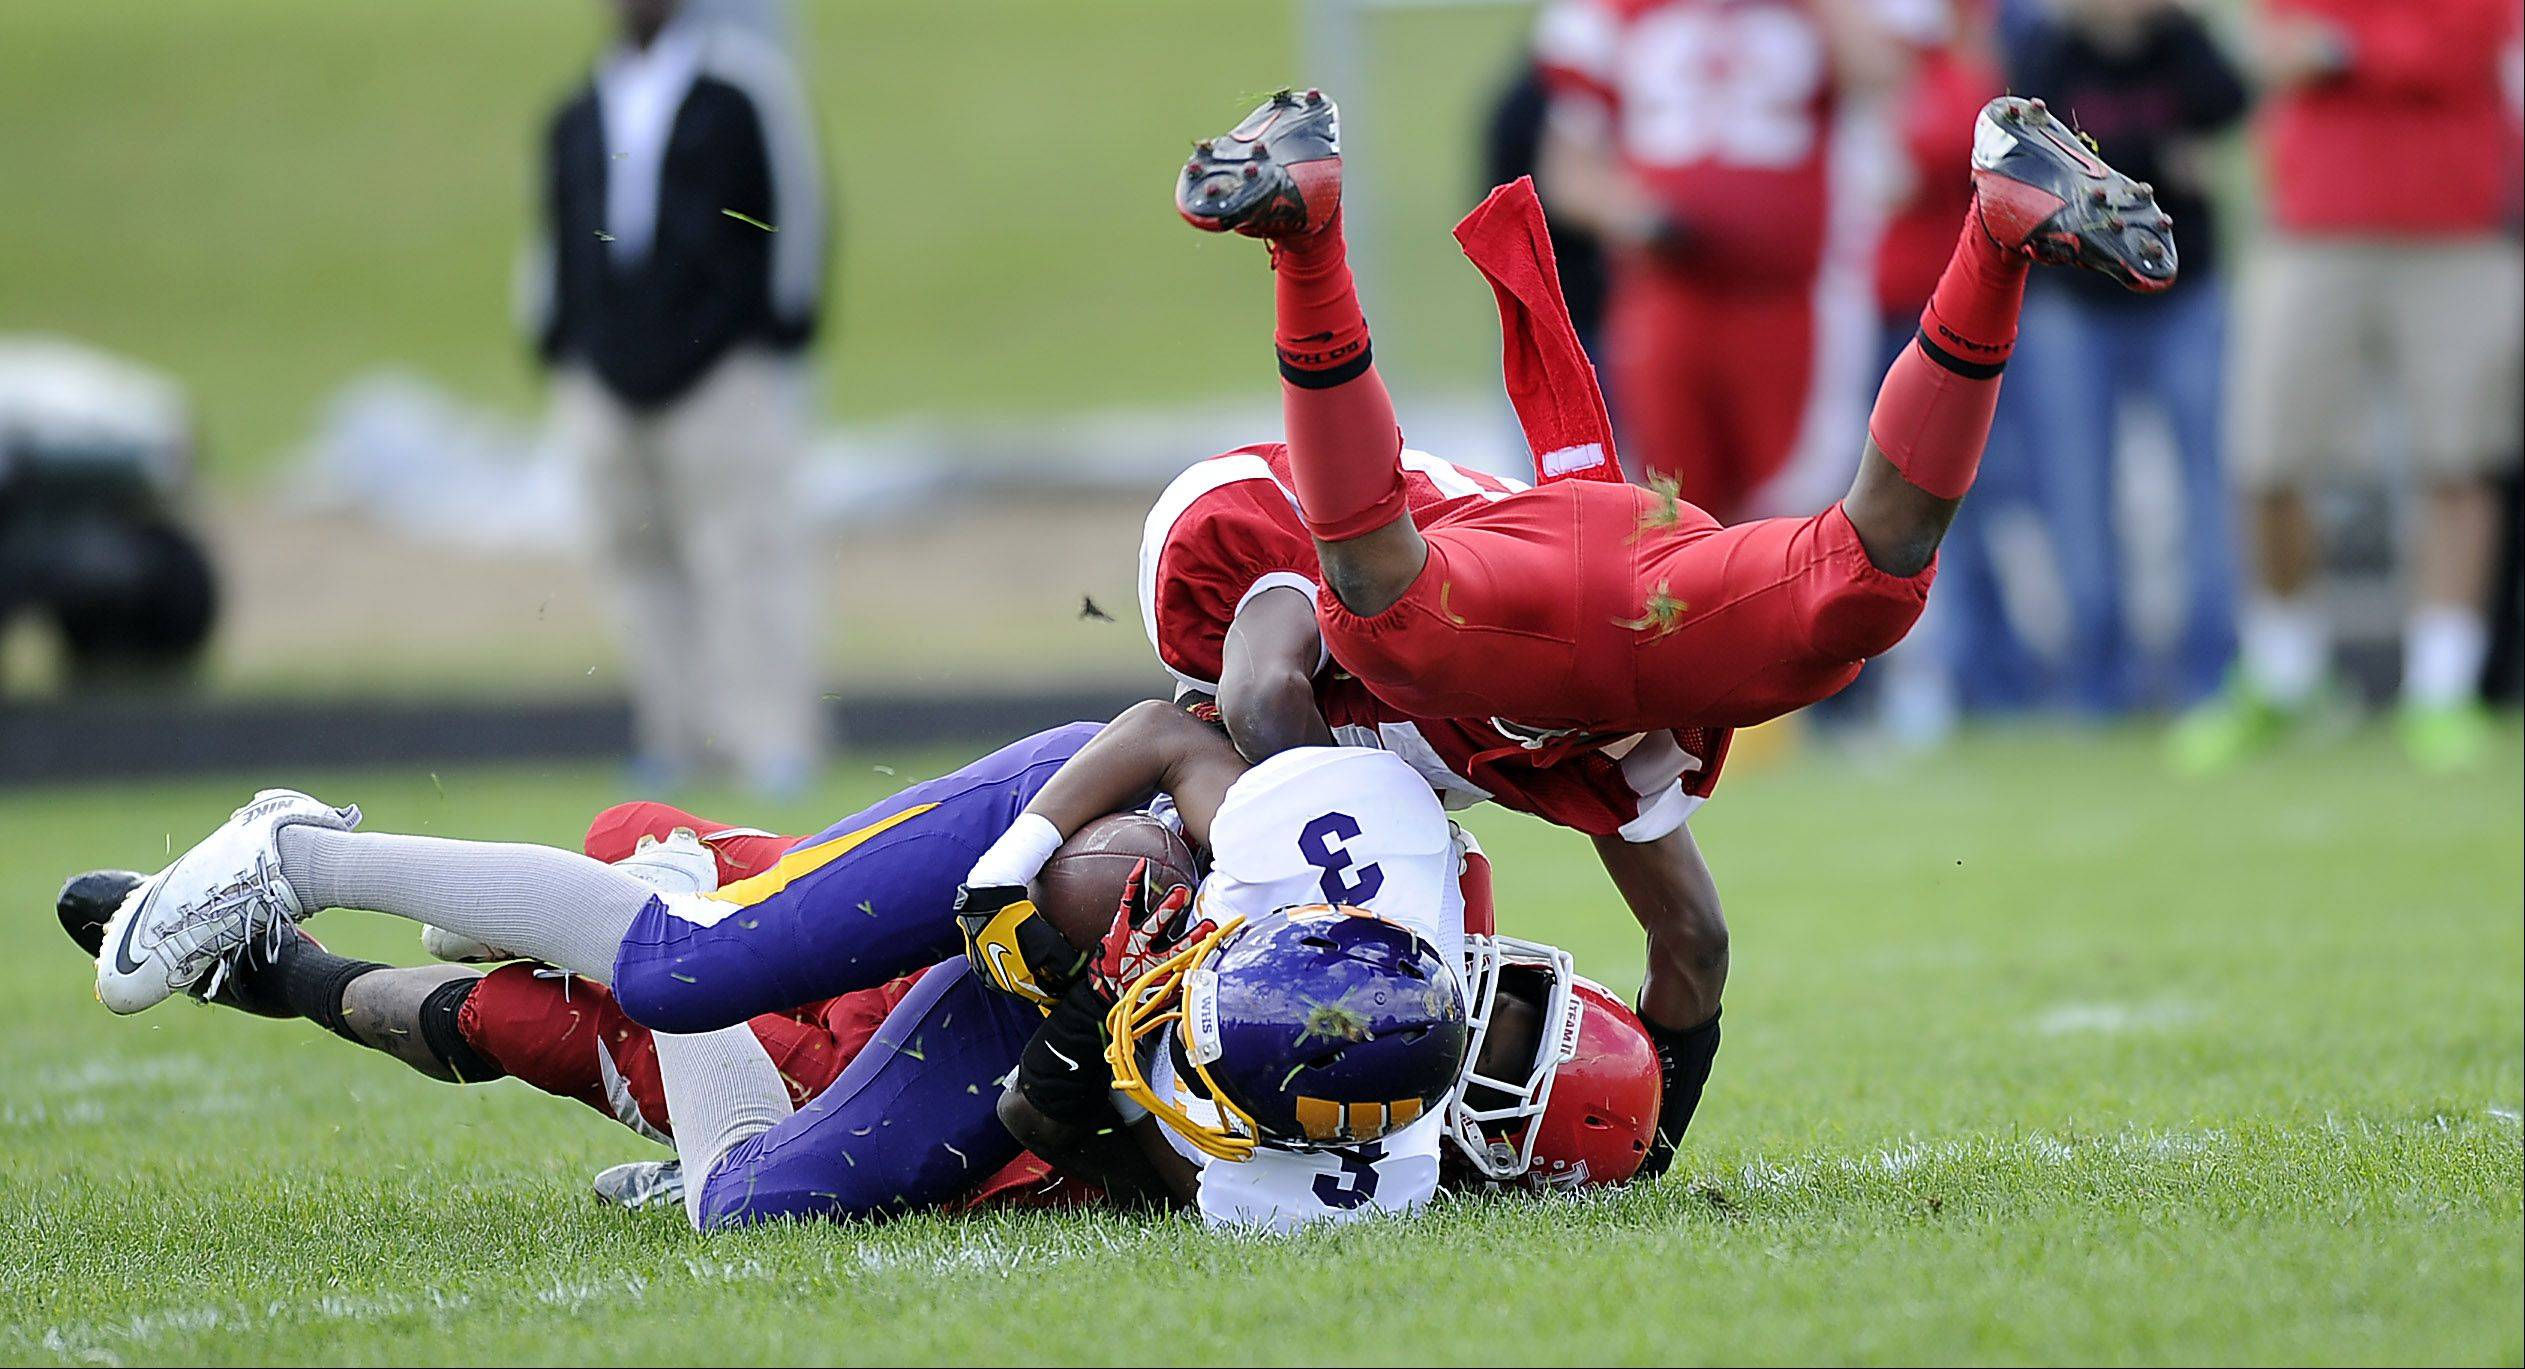 Images: North Chicago vs. Wauconda football